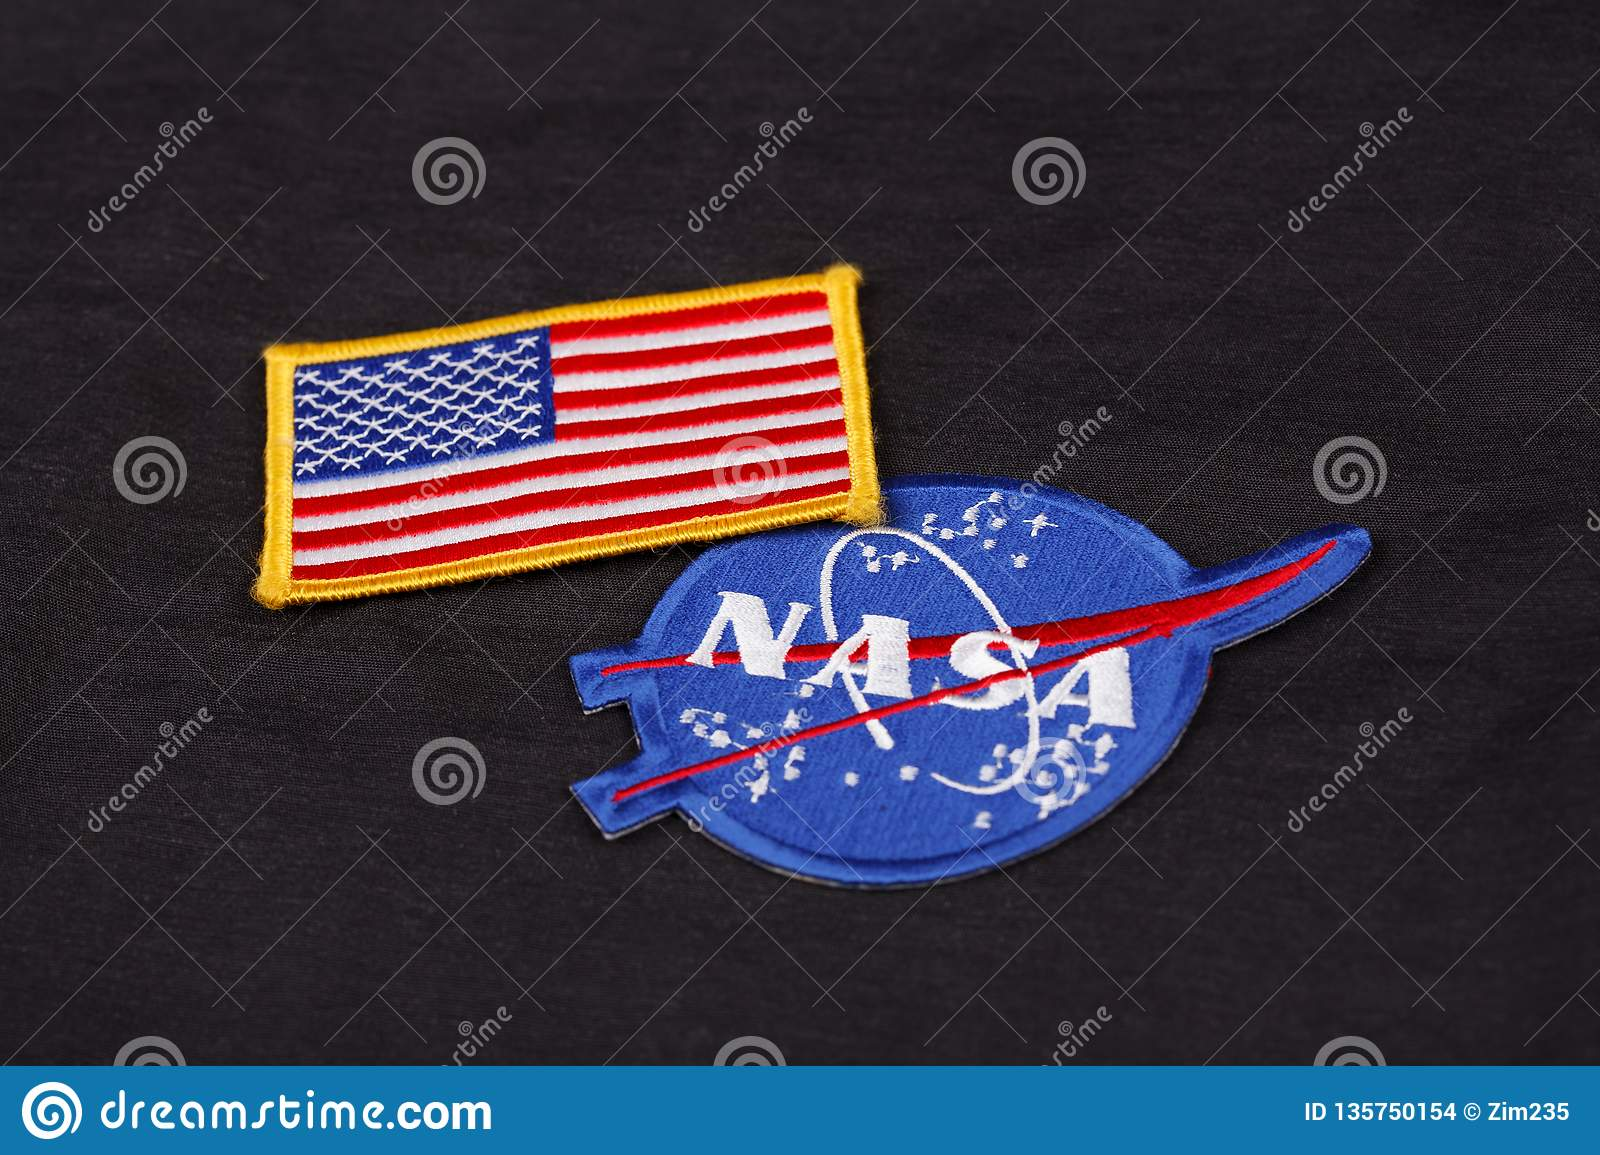 15 March 2018 - The National Aeronautics and Space Administration (NASA) emblem patch and US Flag patch on black uniform